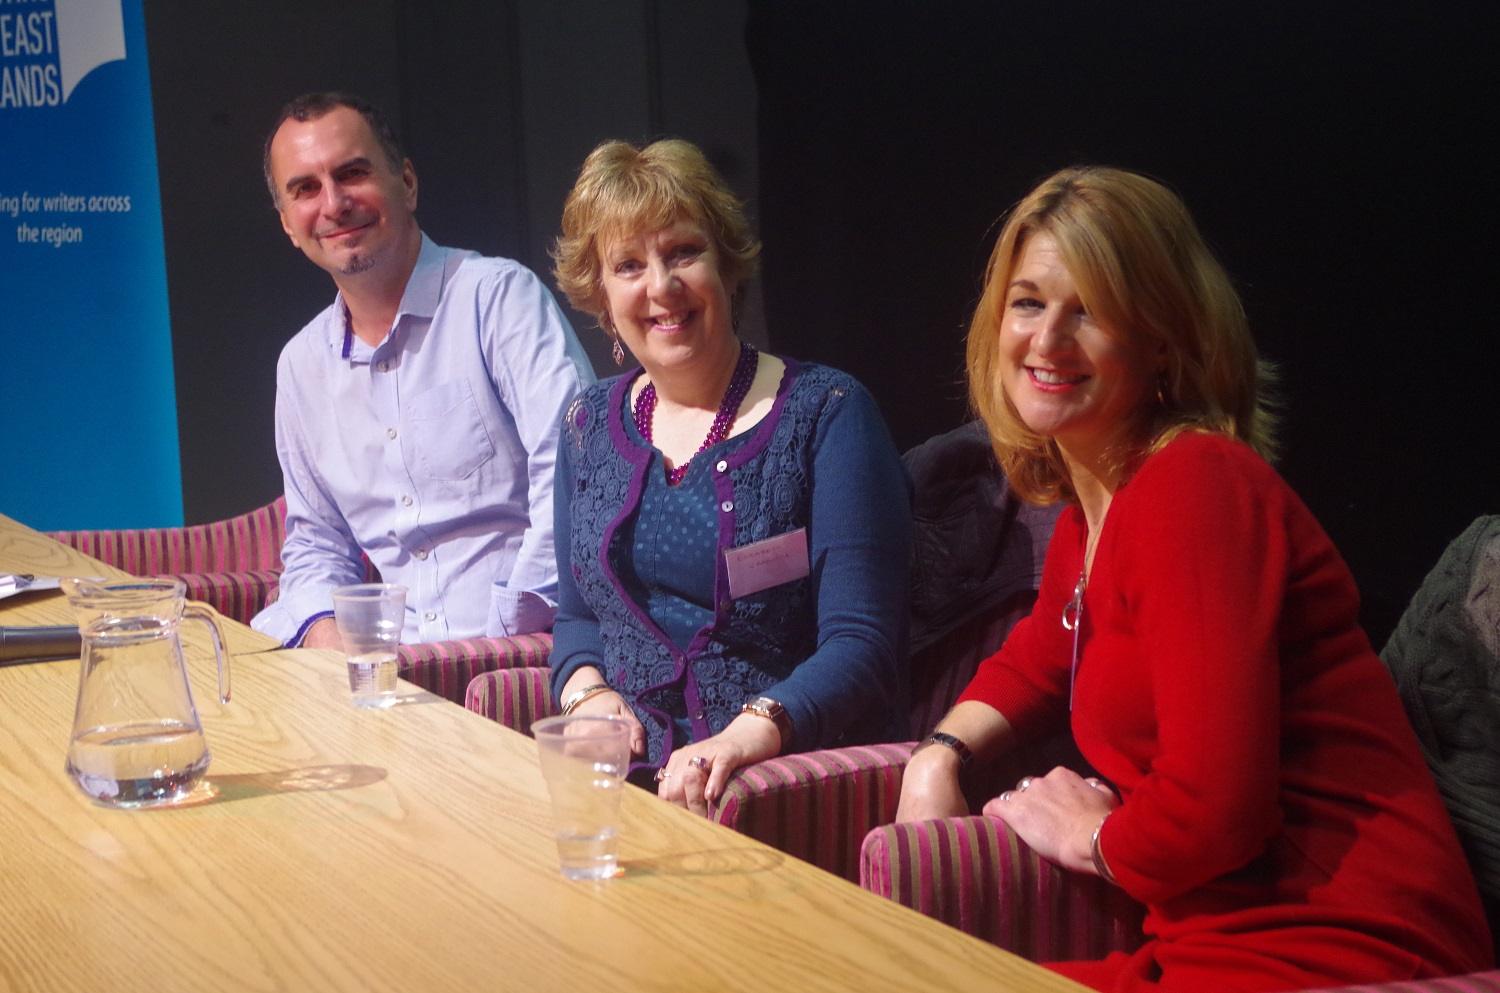 10 James Wilde, Elizabeth Chadwick Clare Harvey at Derby Writers' Day October 2015